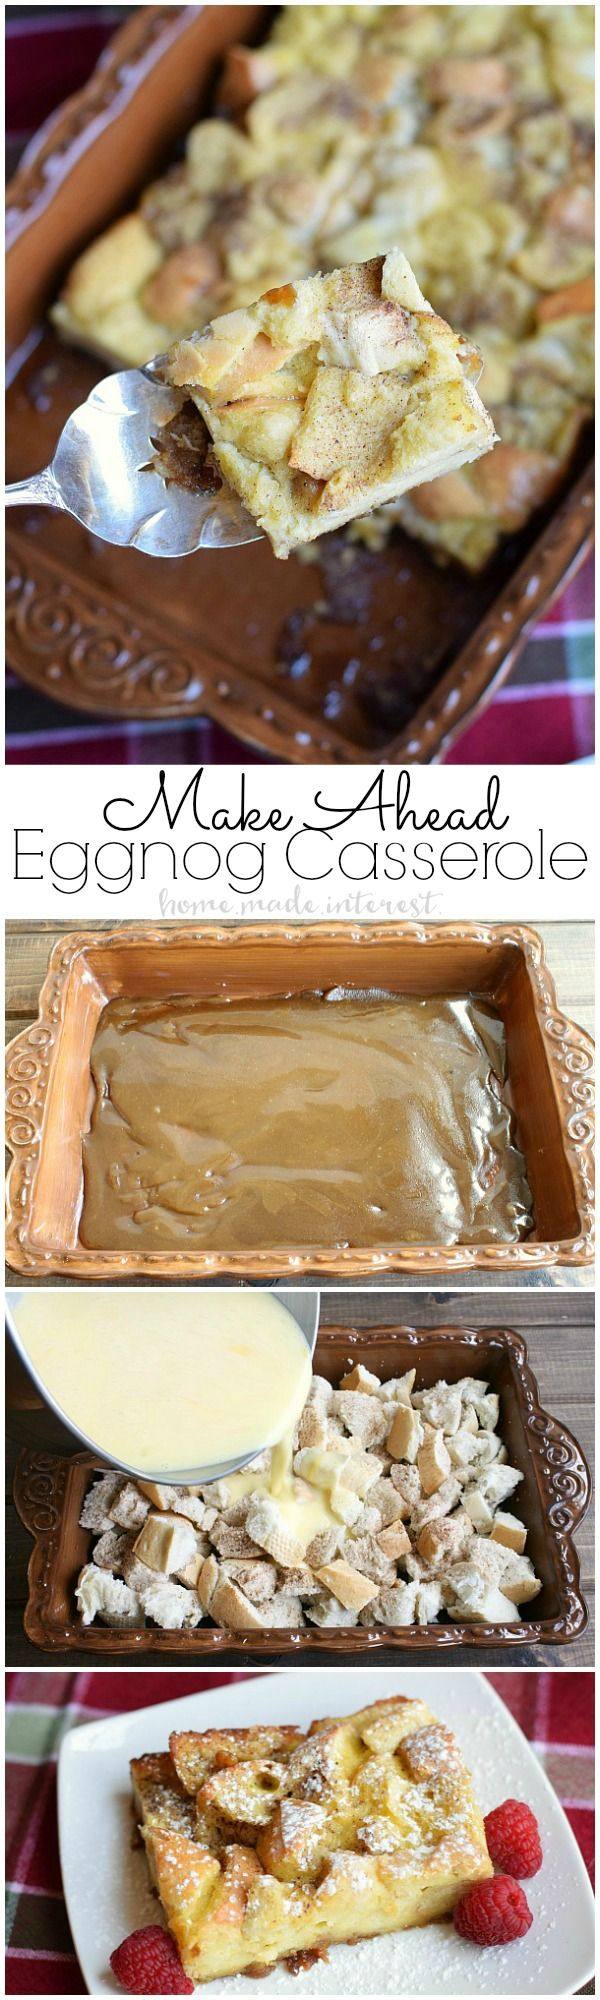 This make ahead egg nog french toast is a breakfast casserole that has all of the flavors of the holiday drink we all love, egg nog. A simple breakfast casserole recipe that is perfect for holiday breakfast or brunch. (Fall Baking French Toast)